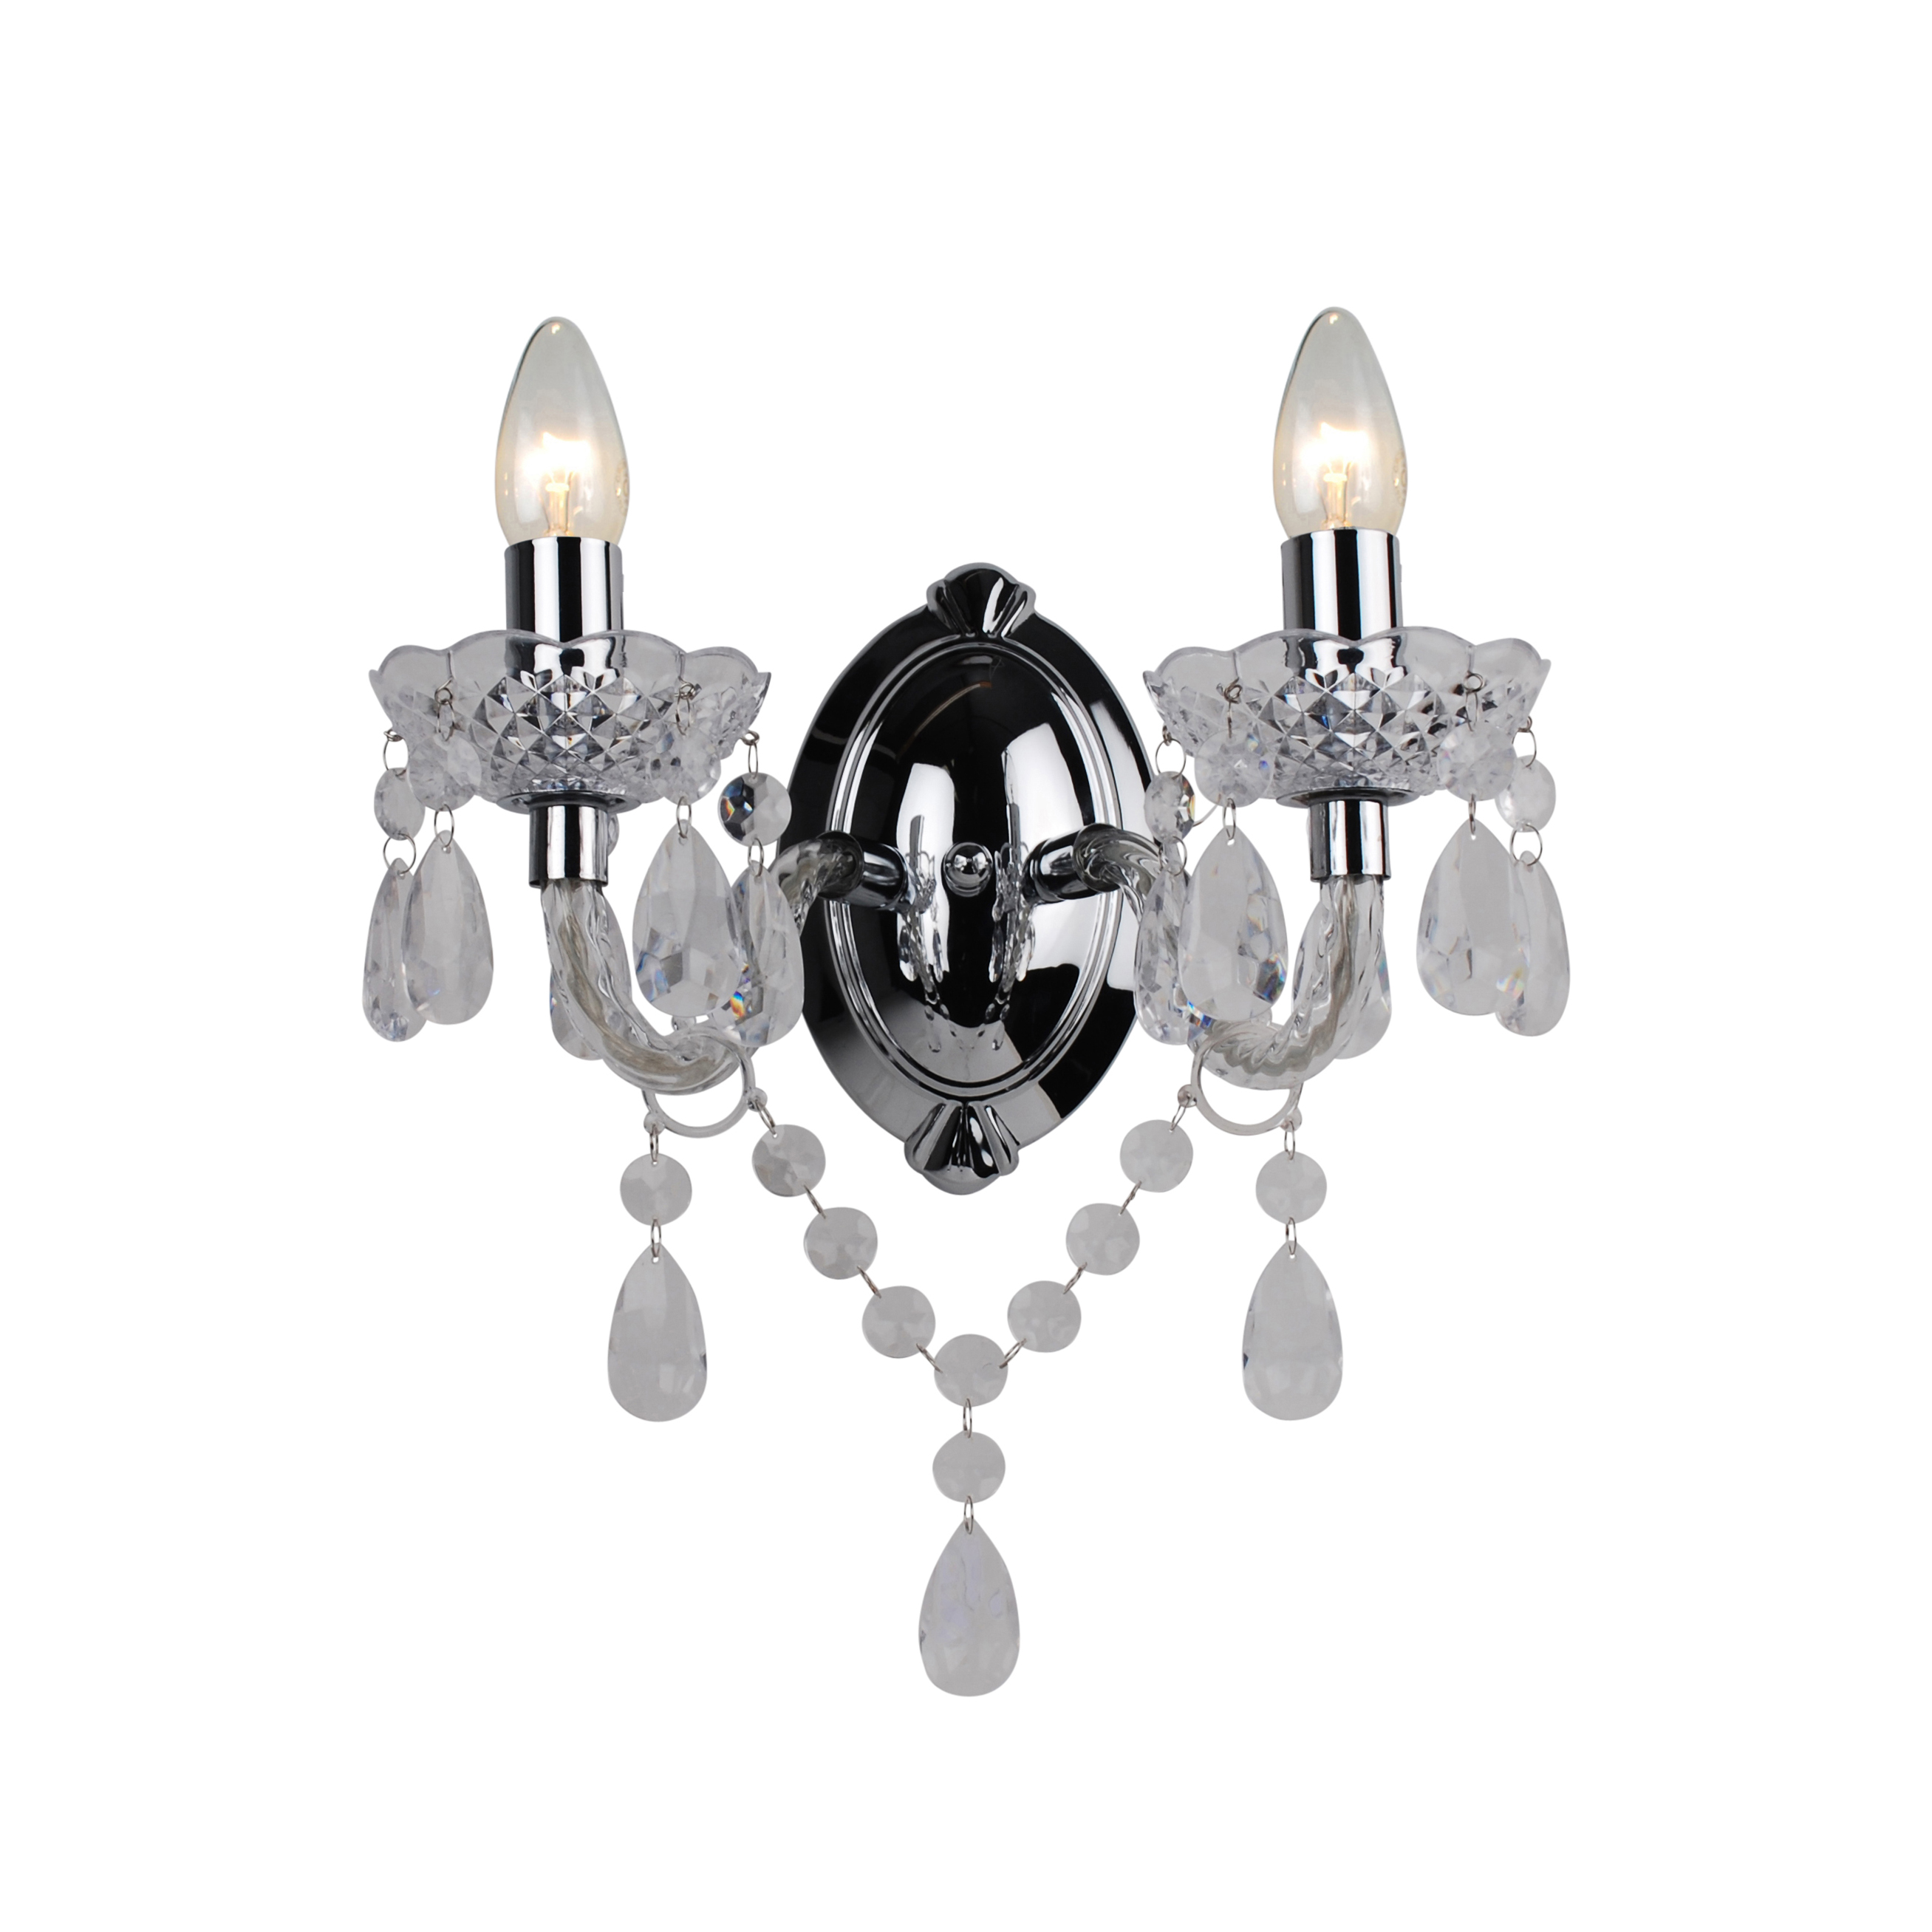 Marie Therese Wall Lights Chrome : MARIE THERESE 2 LIGHTS Clear & CHROME WALL BRACKET CHANDELIER LIGHT eBay